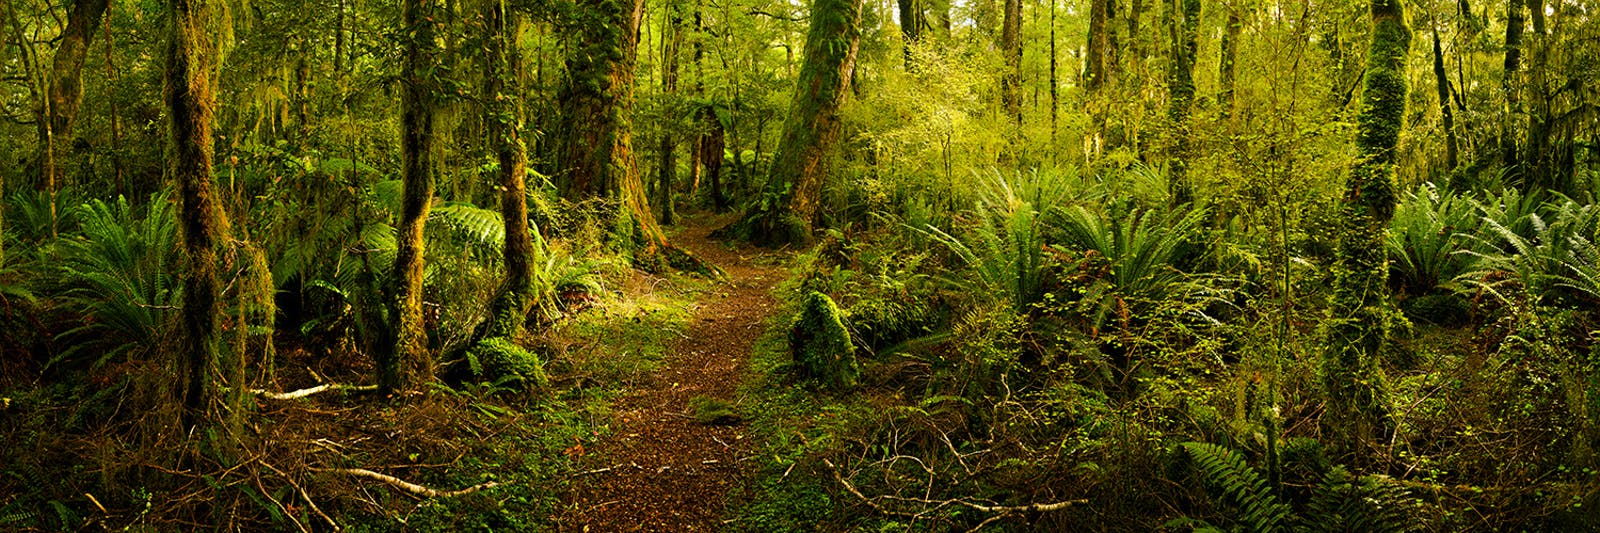 Fiordland temperate forests